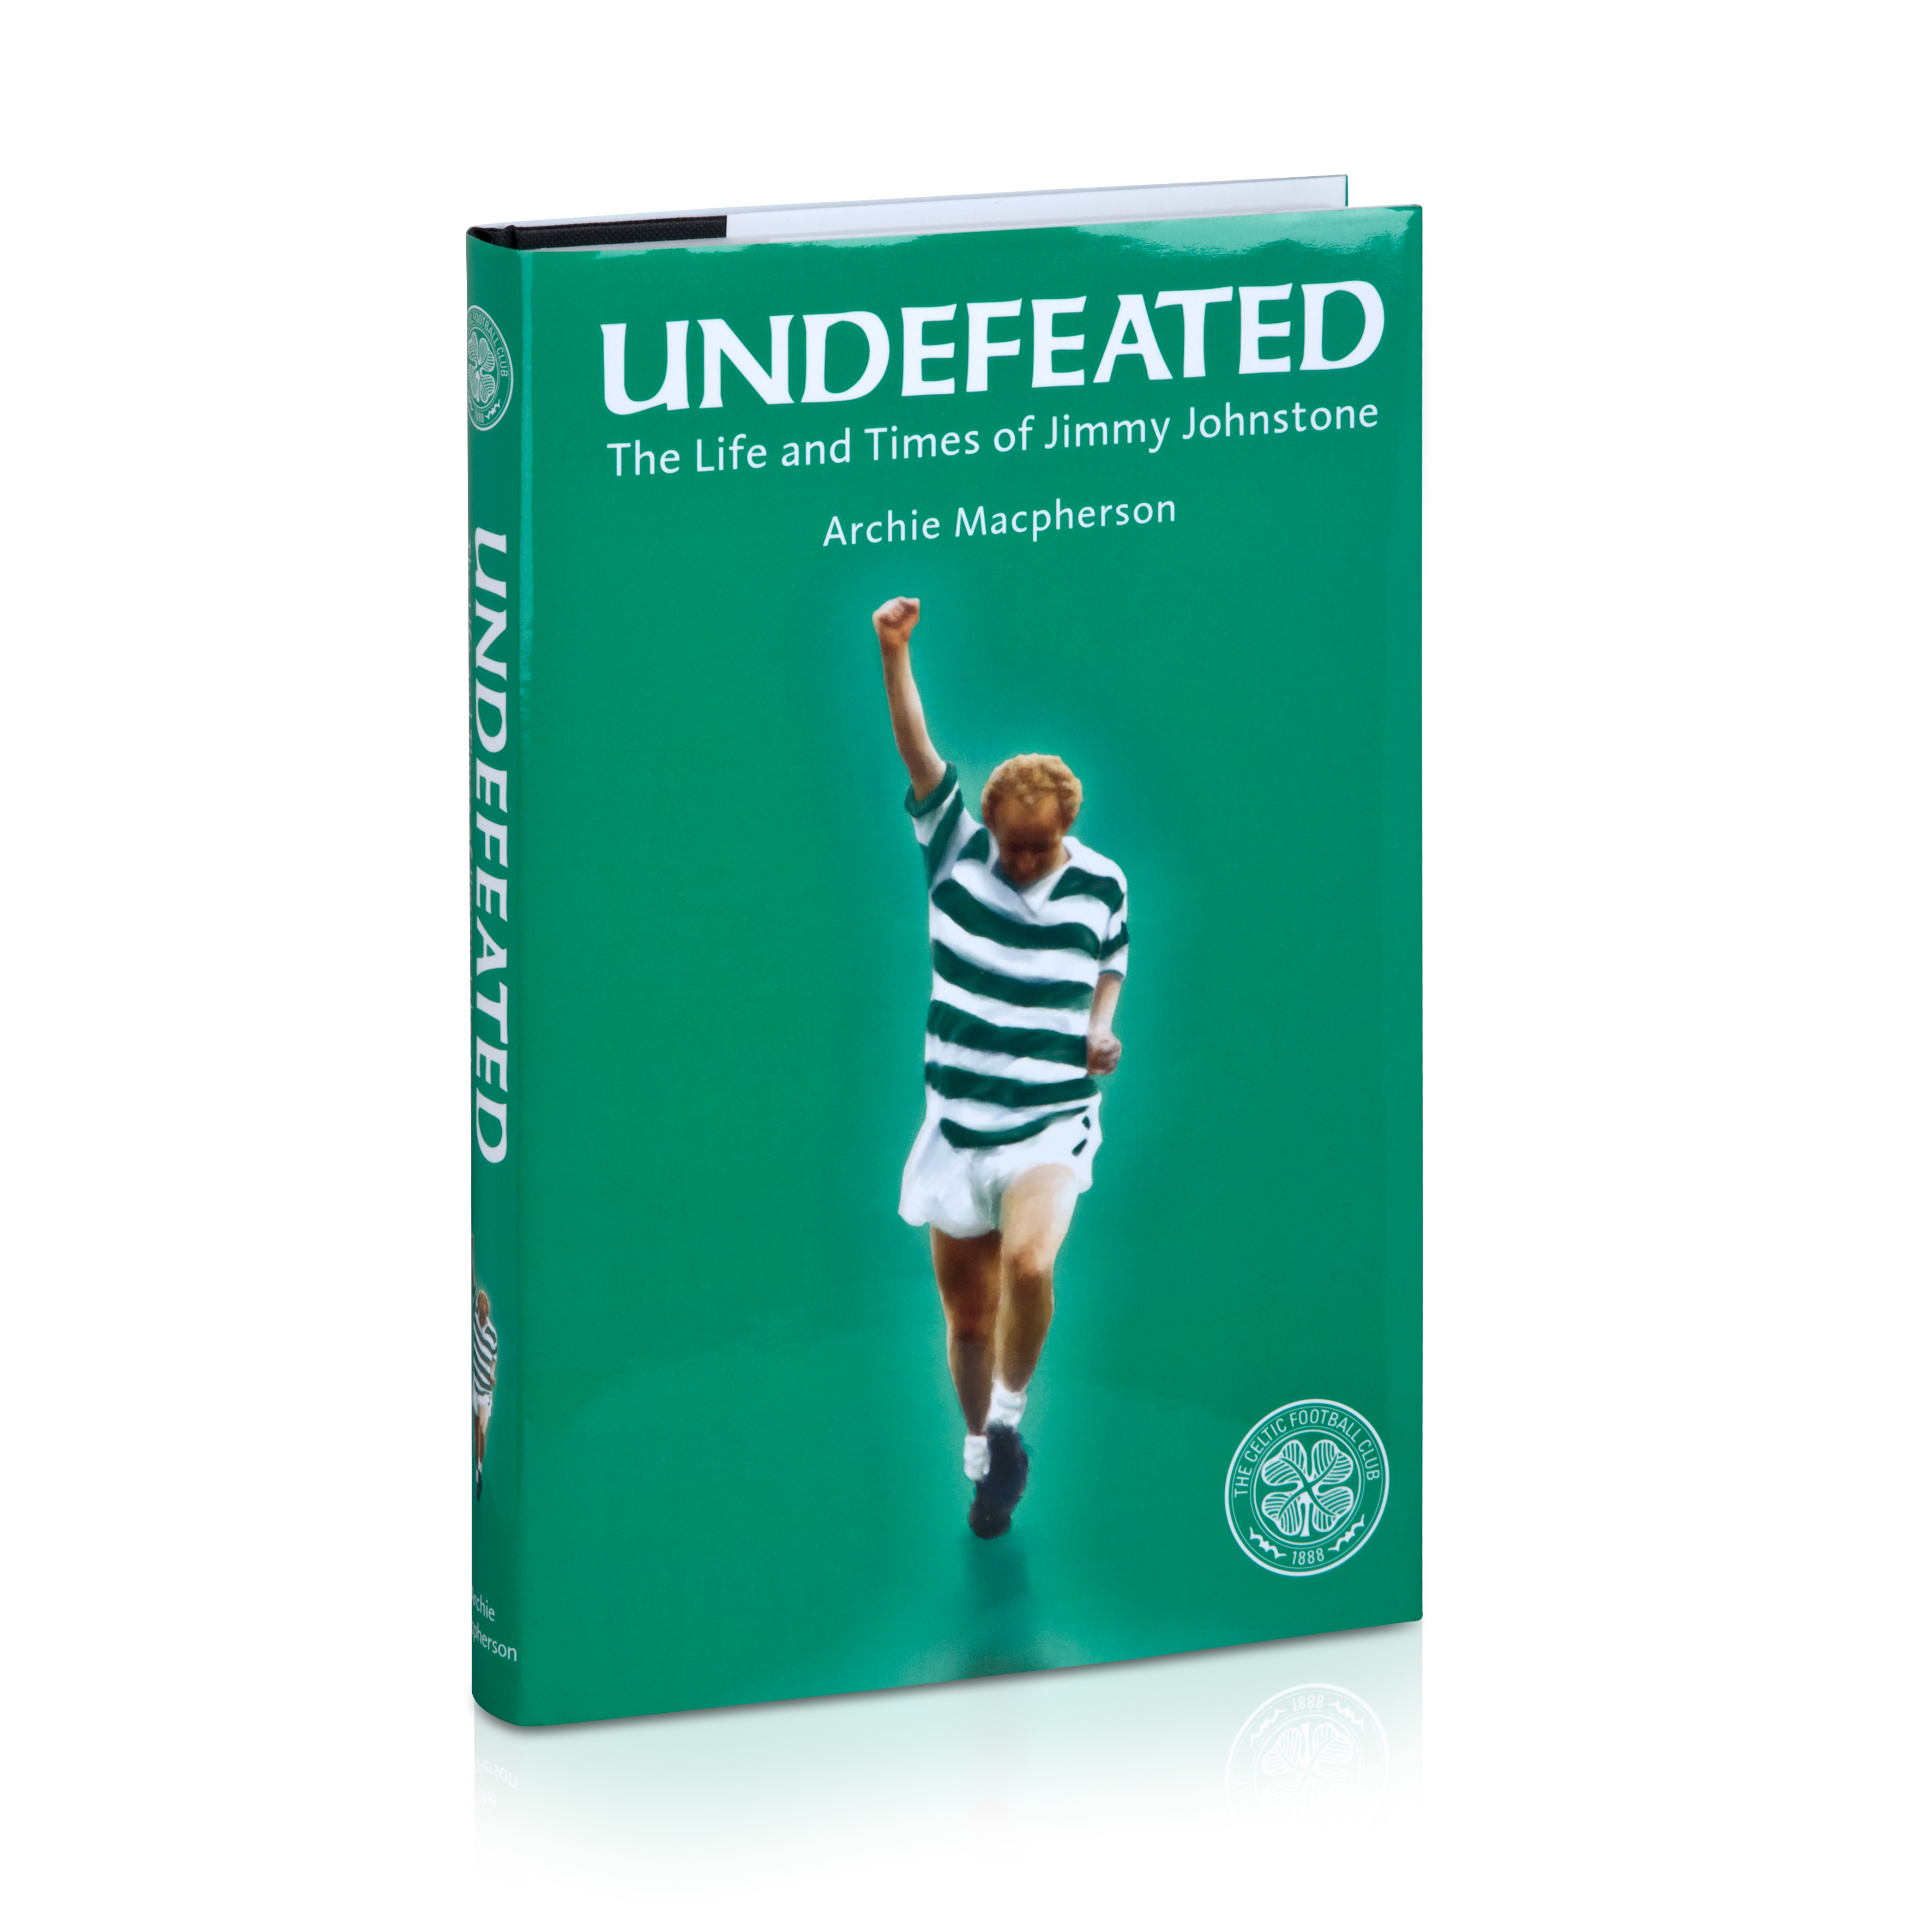 Celtic Undefeated - The Life And Times Of Jimmy Johnstone Book